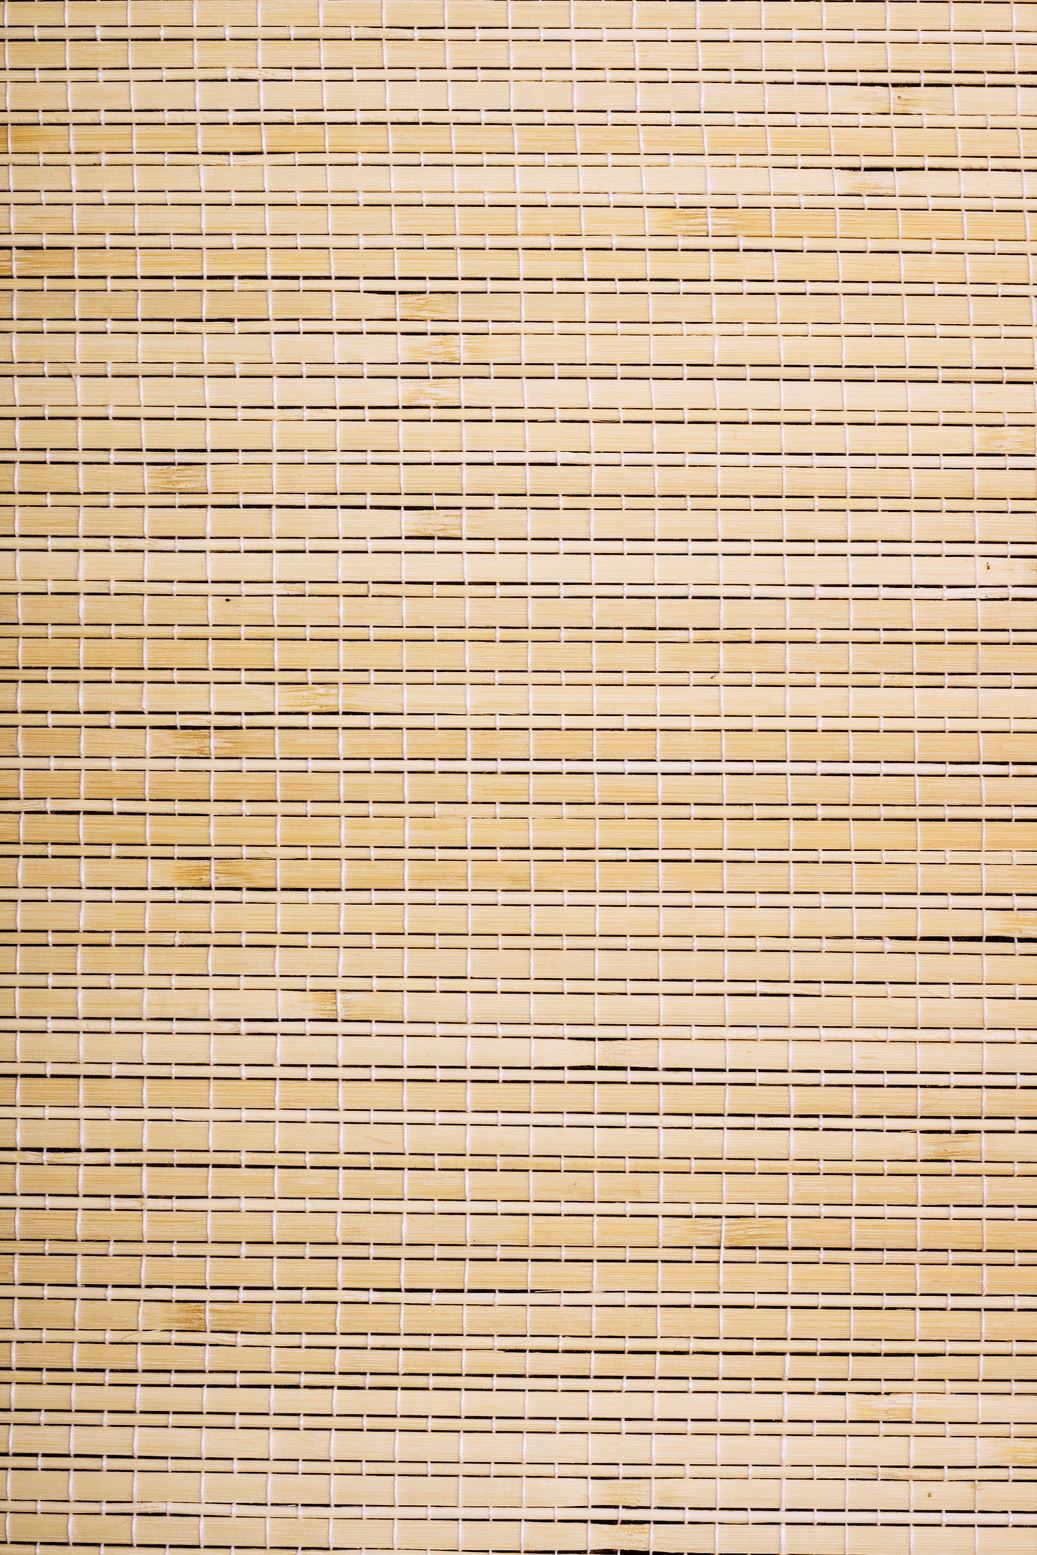 bamboo background, Image, Wallpaper, Vibrant, Texture, HQ Photo